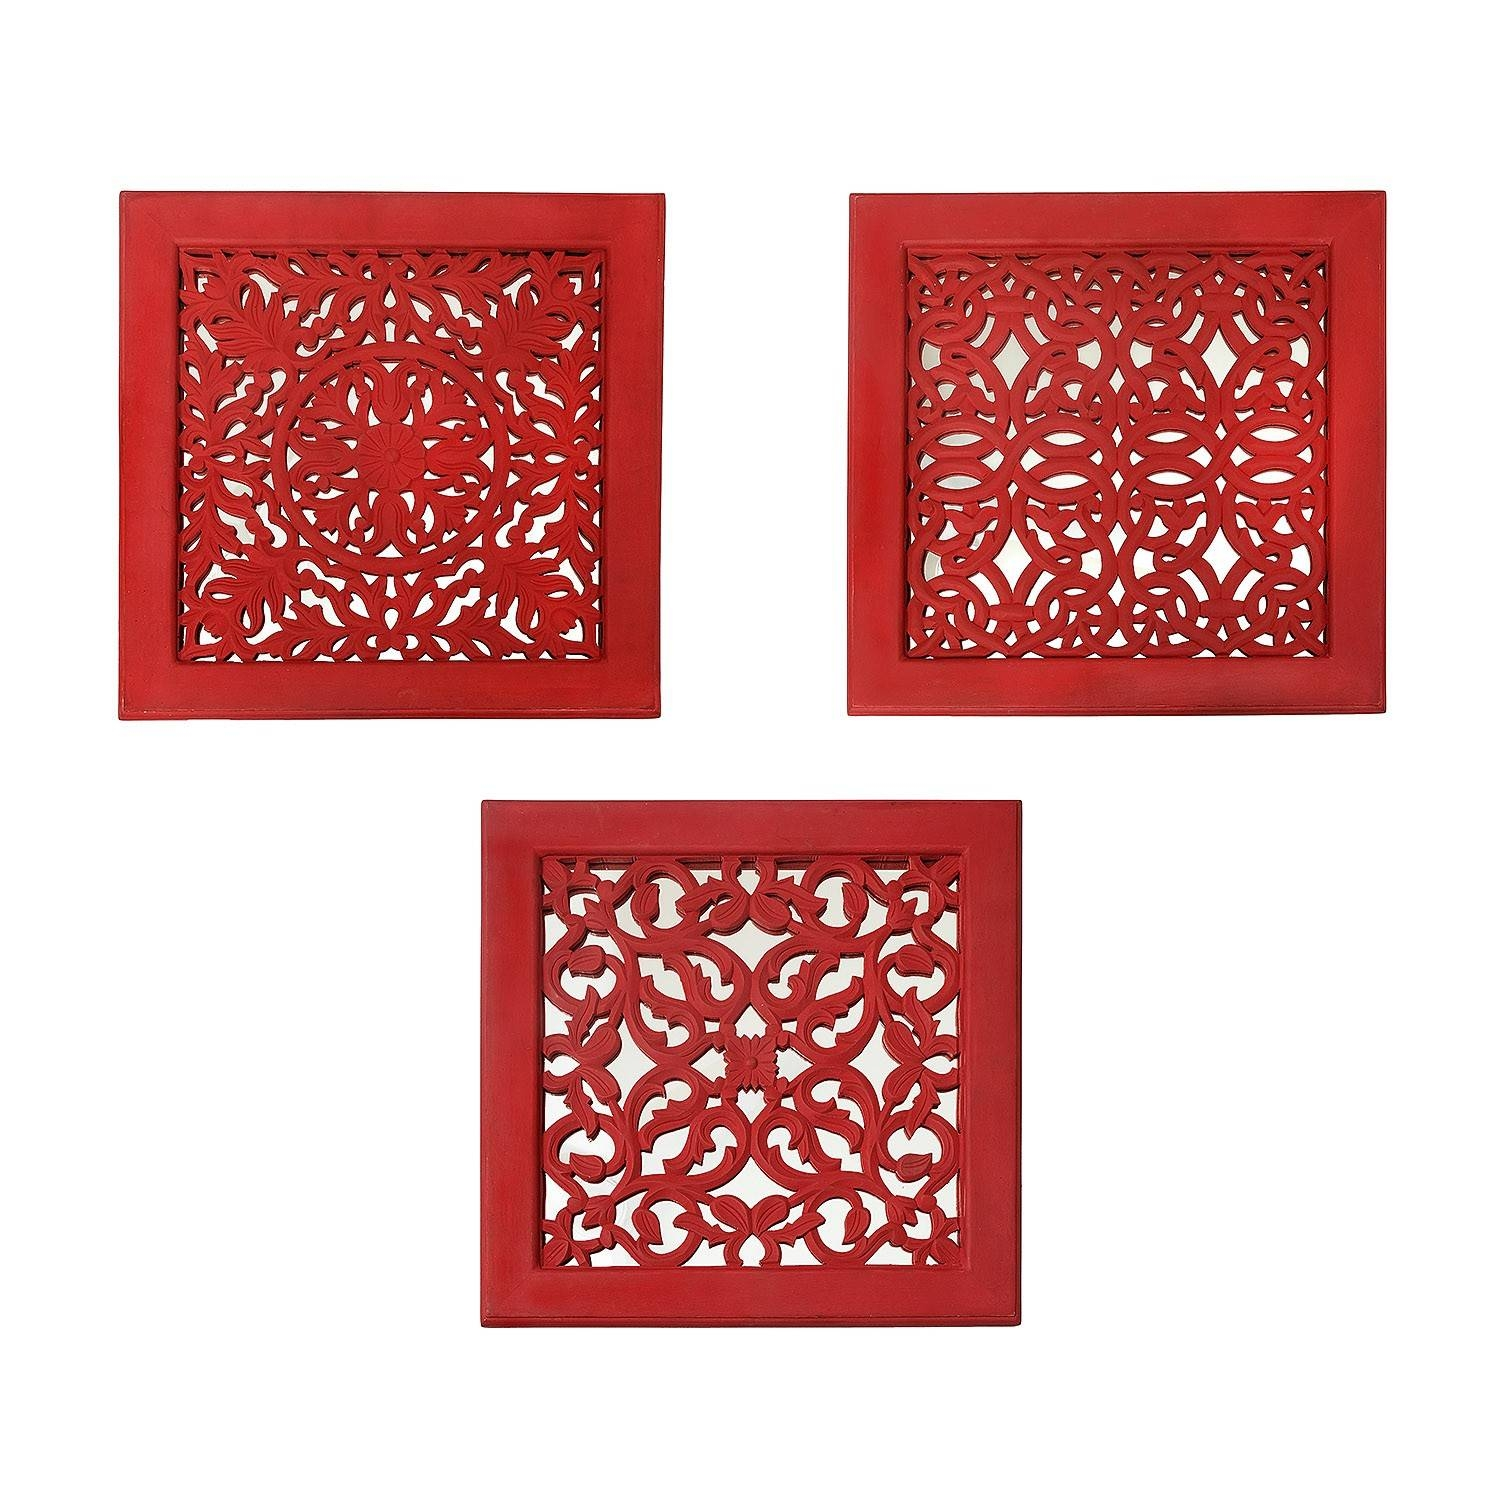 Fretwork Wall Art: Red (Set Of 3) | The Yellow Door Store With Regard To Most Popular Fretwork Wall Art (View 8 of 25)